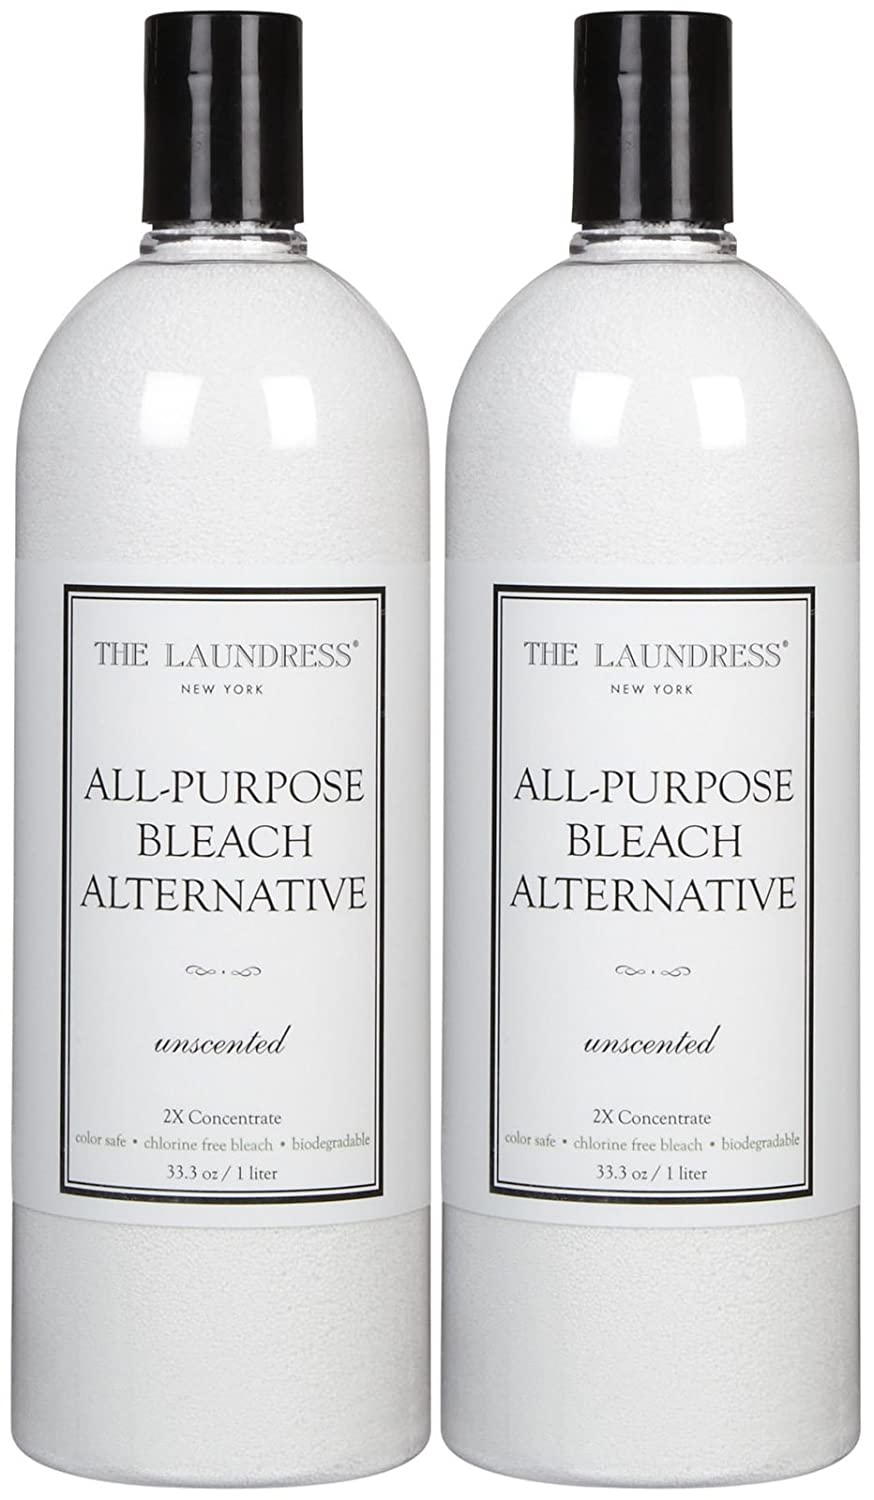 The Laundress All Purpose Bleach Alternative - Two Pack by The Laundress New York B00746XUMS